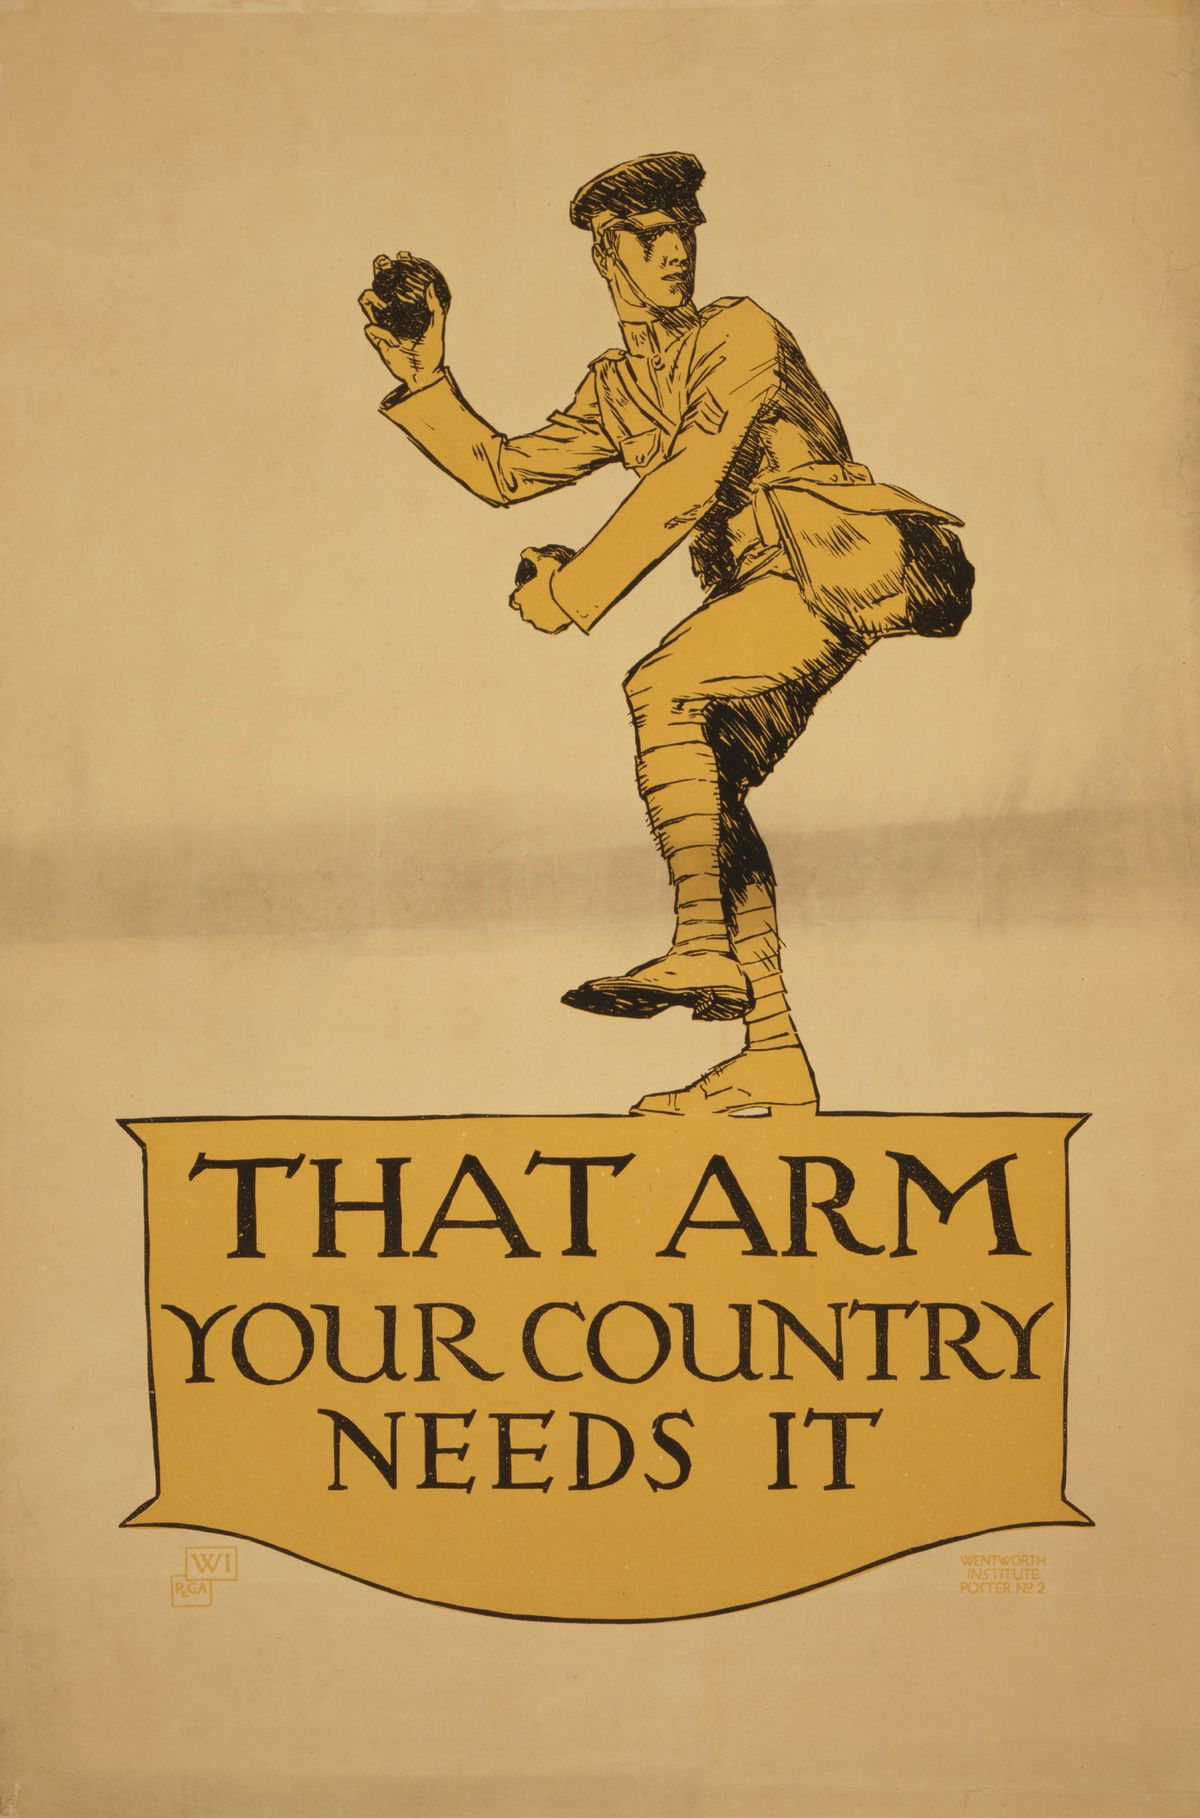 """Soldier Pitching Baseball, """"That Arm, Your Country Needs it"""", World War I Recruitment Poster, 1917"""